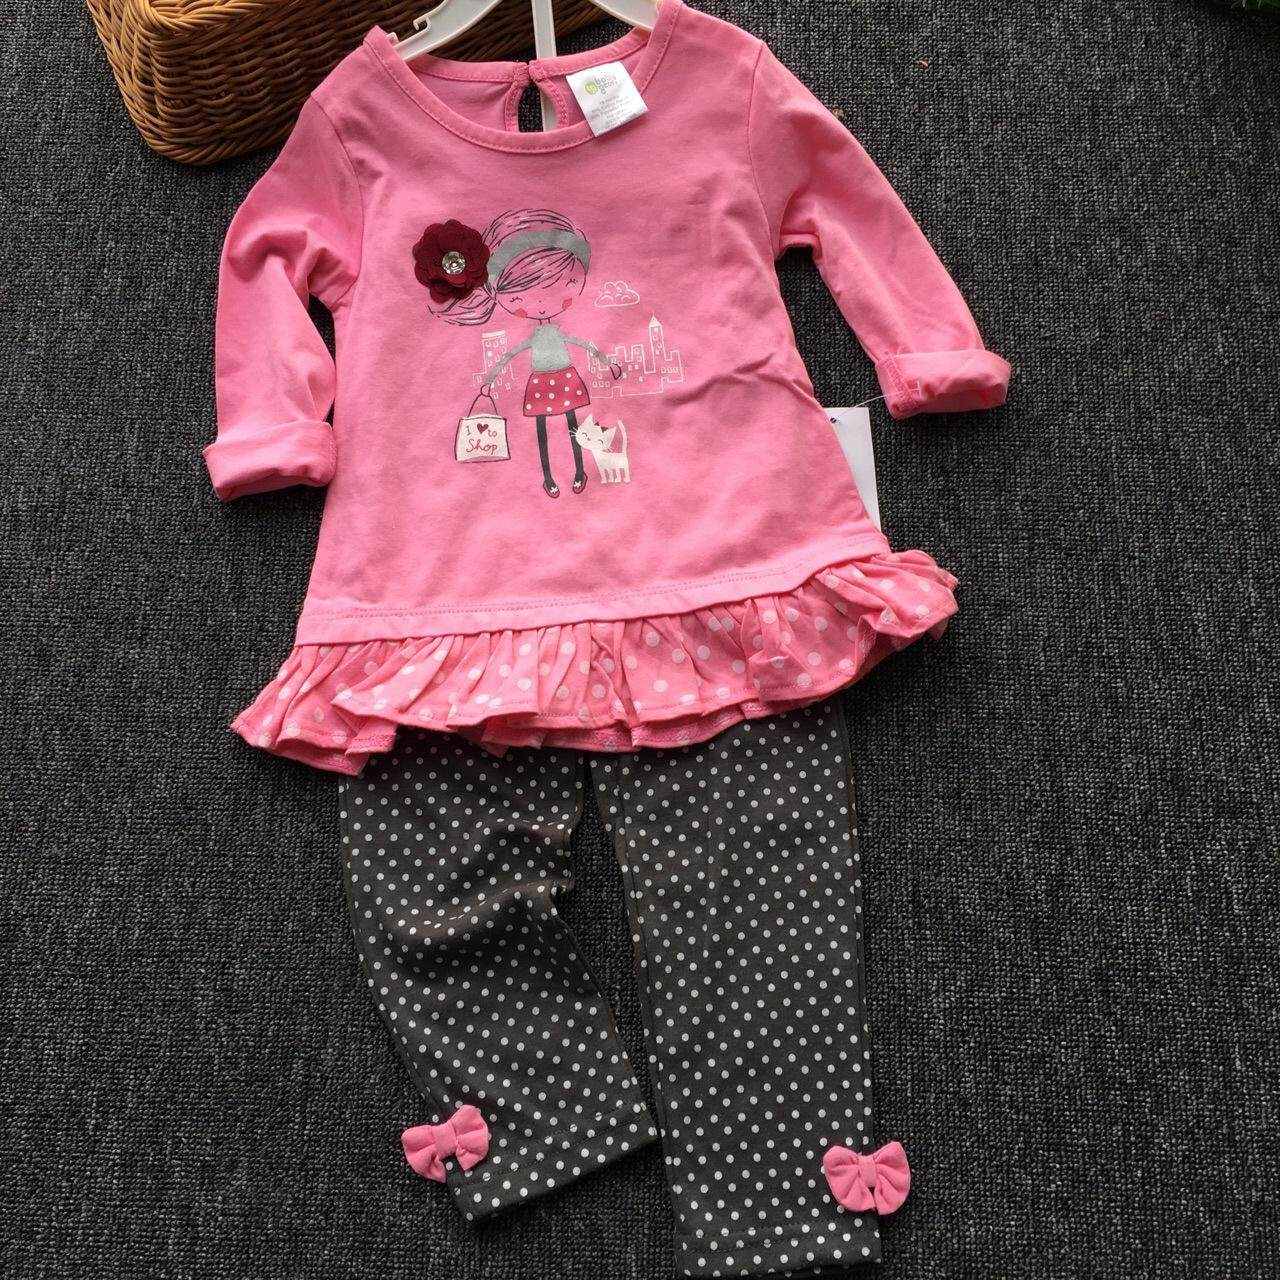 PREMIUM QUALITY Clothing Set Pink Blouse and Grey Pants Set for Girls